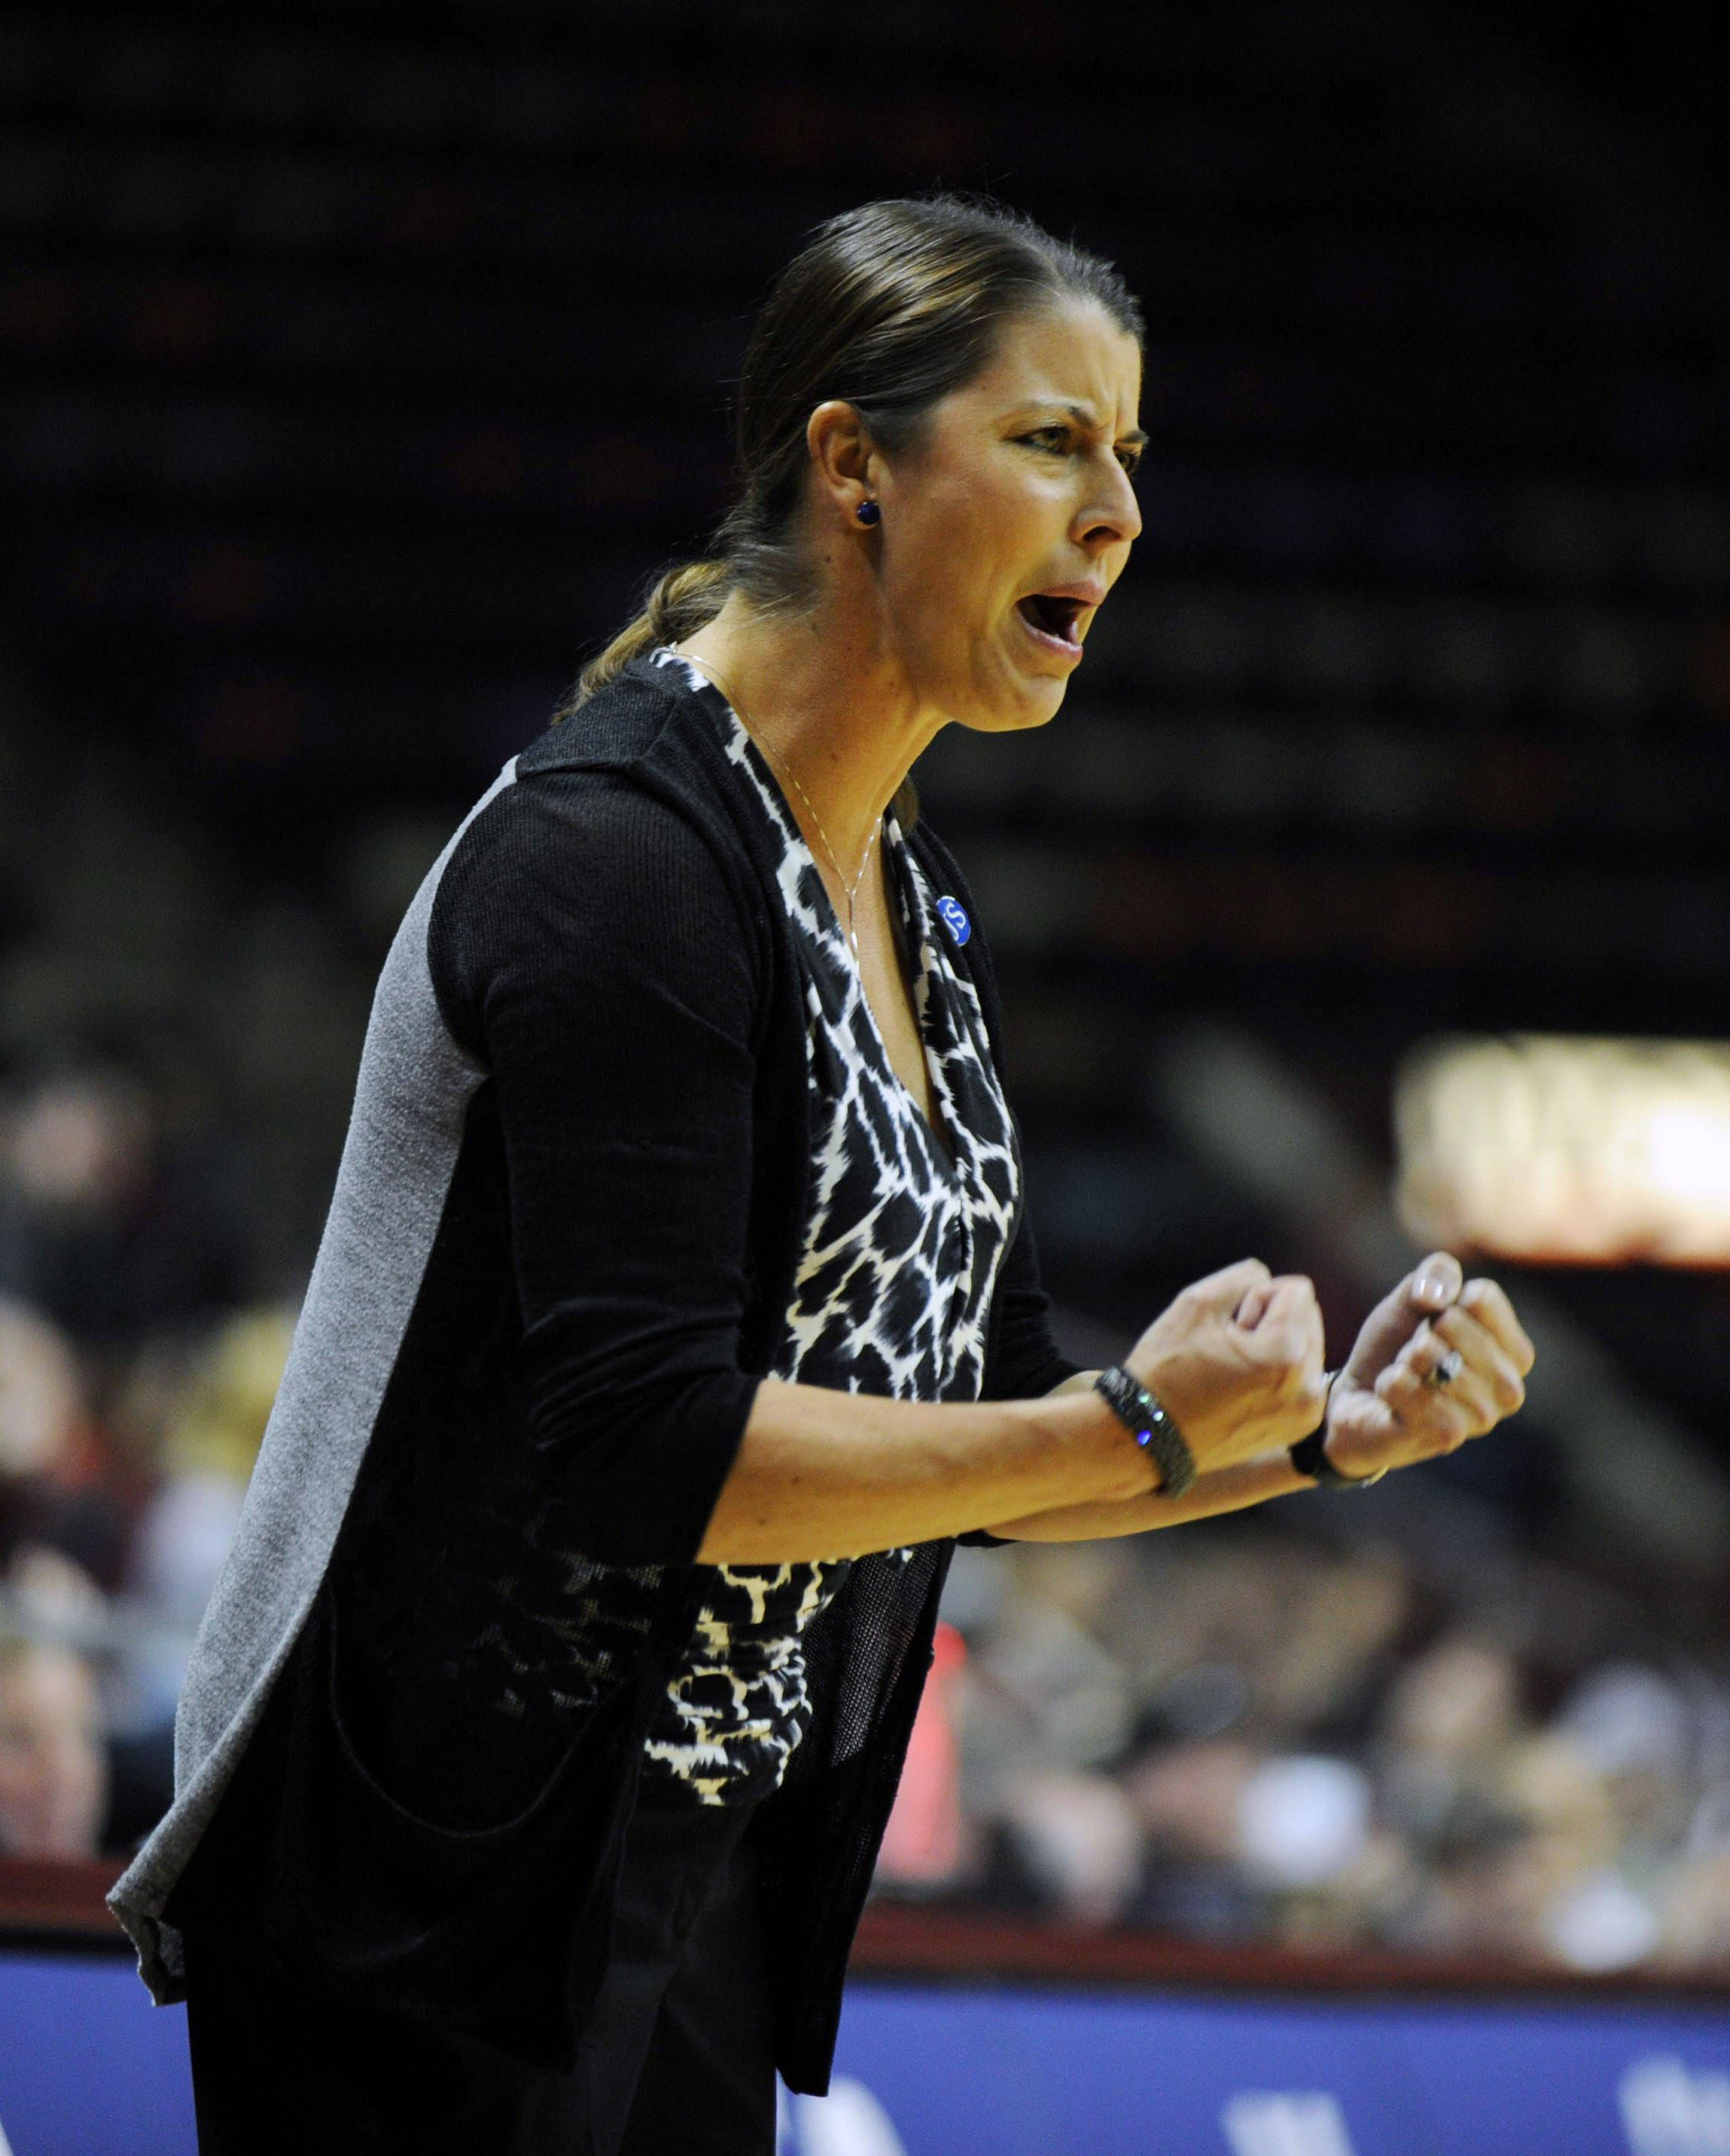 Jan 23, 2014; Tallahassee, FL, USA; Duke Blue Devils head coach Joanne McCallie during the first half of the game against the Florida State Seminoles at the Donald L. Tucker Center (Tallahassee). Mandatory Credit: Melina Vastola-USA TODAY Sports